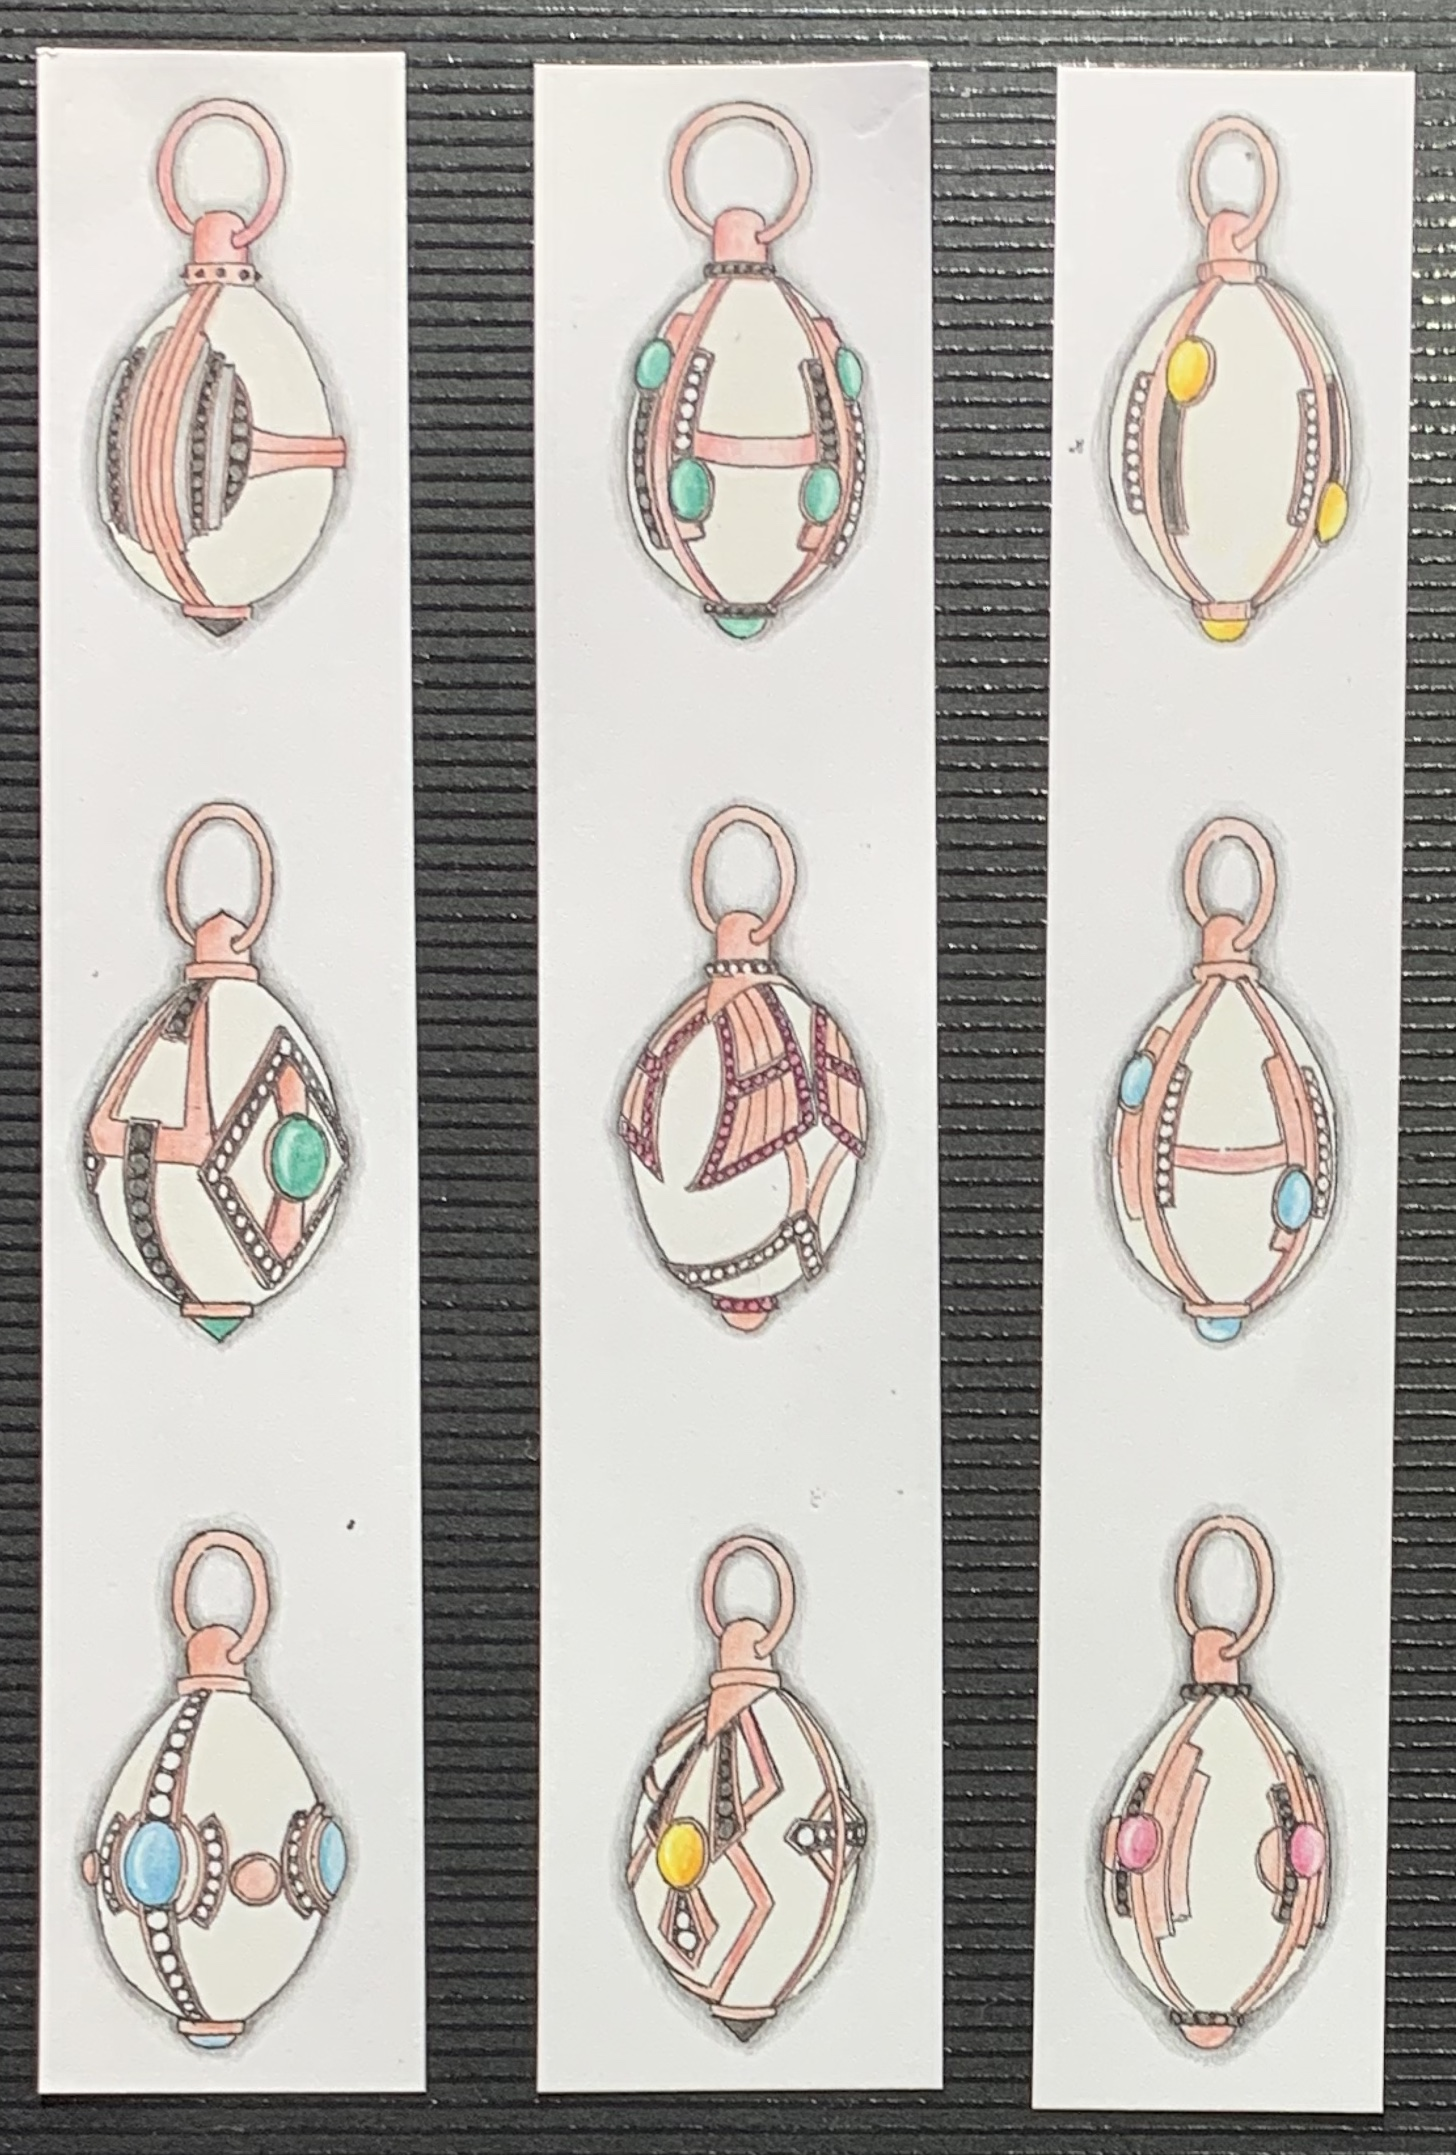 Pendant designs for a frame to hold a rock crystal egg